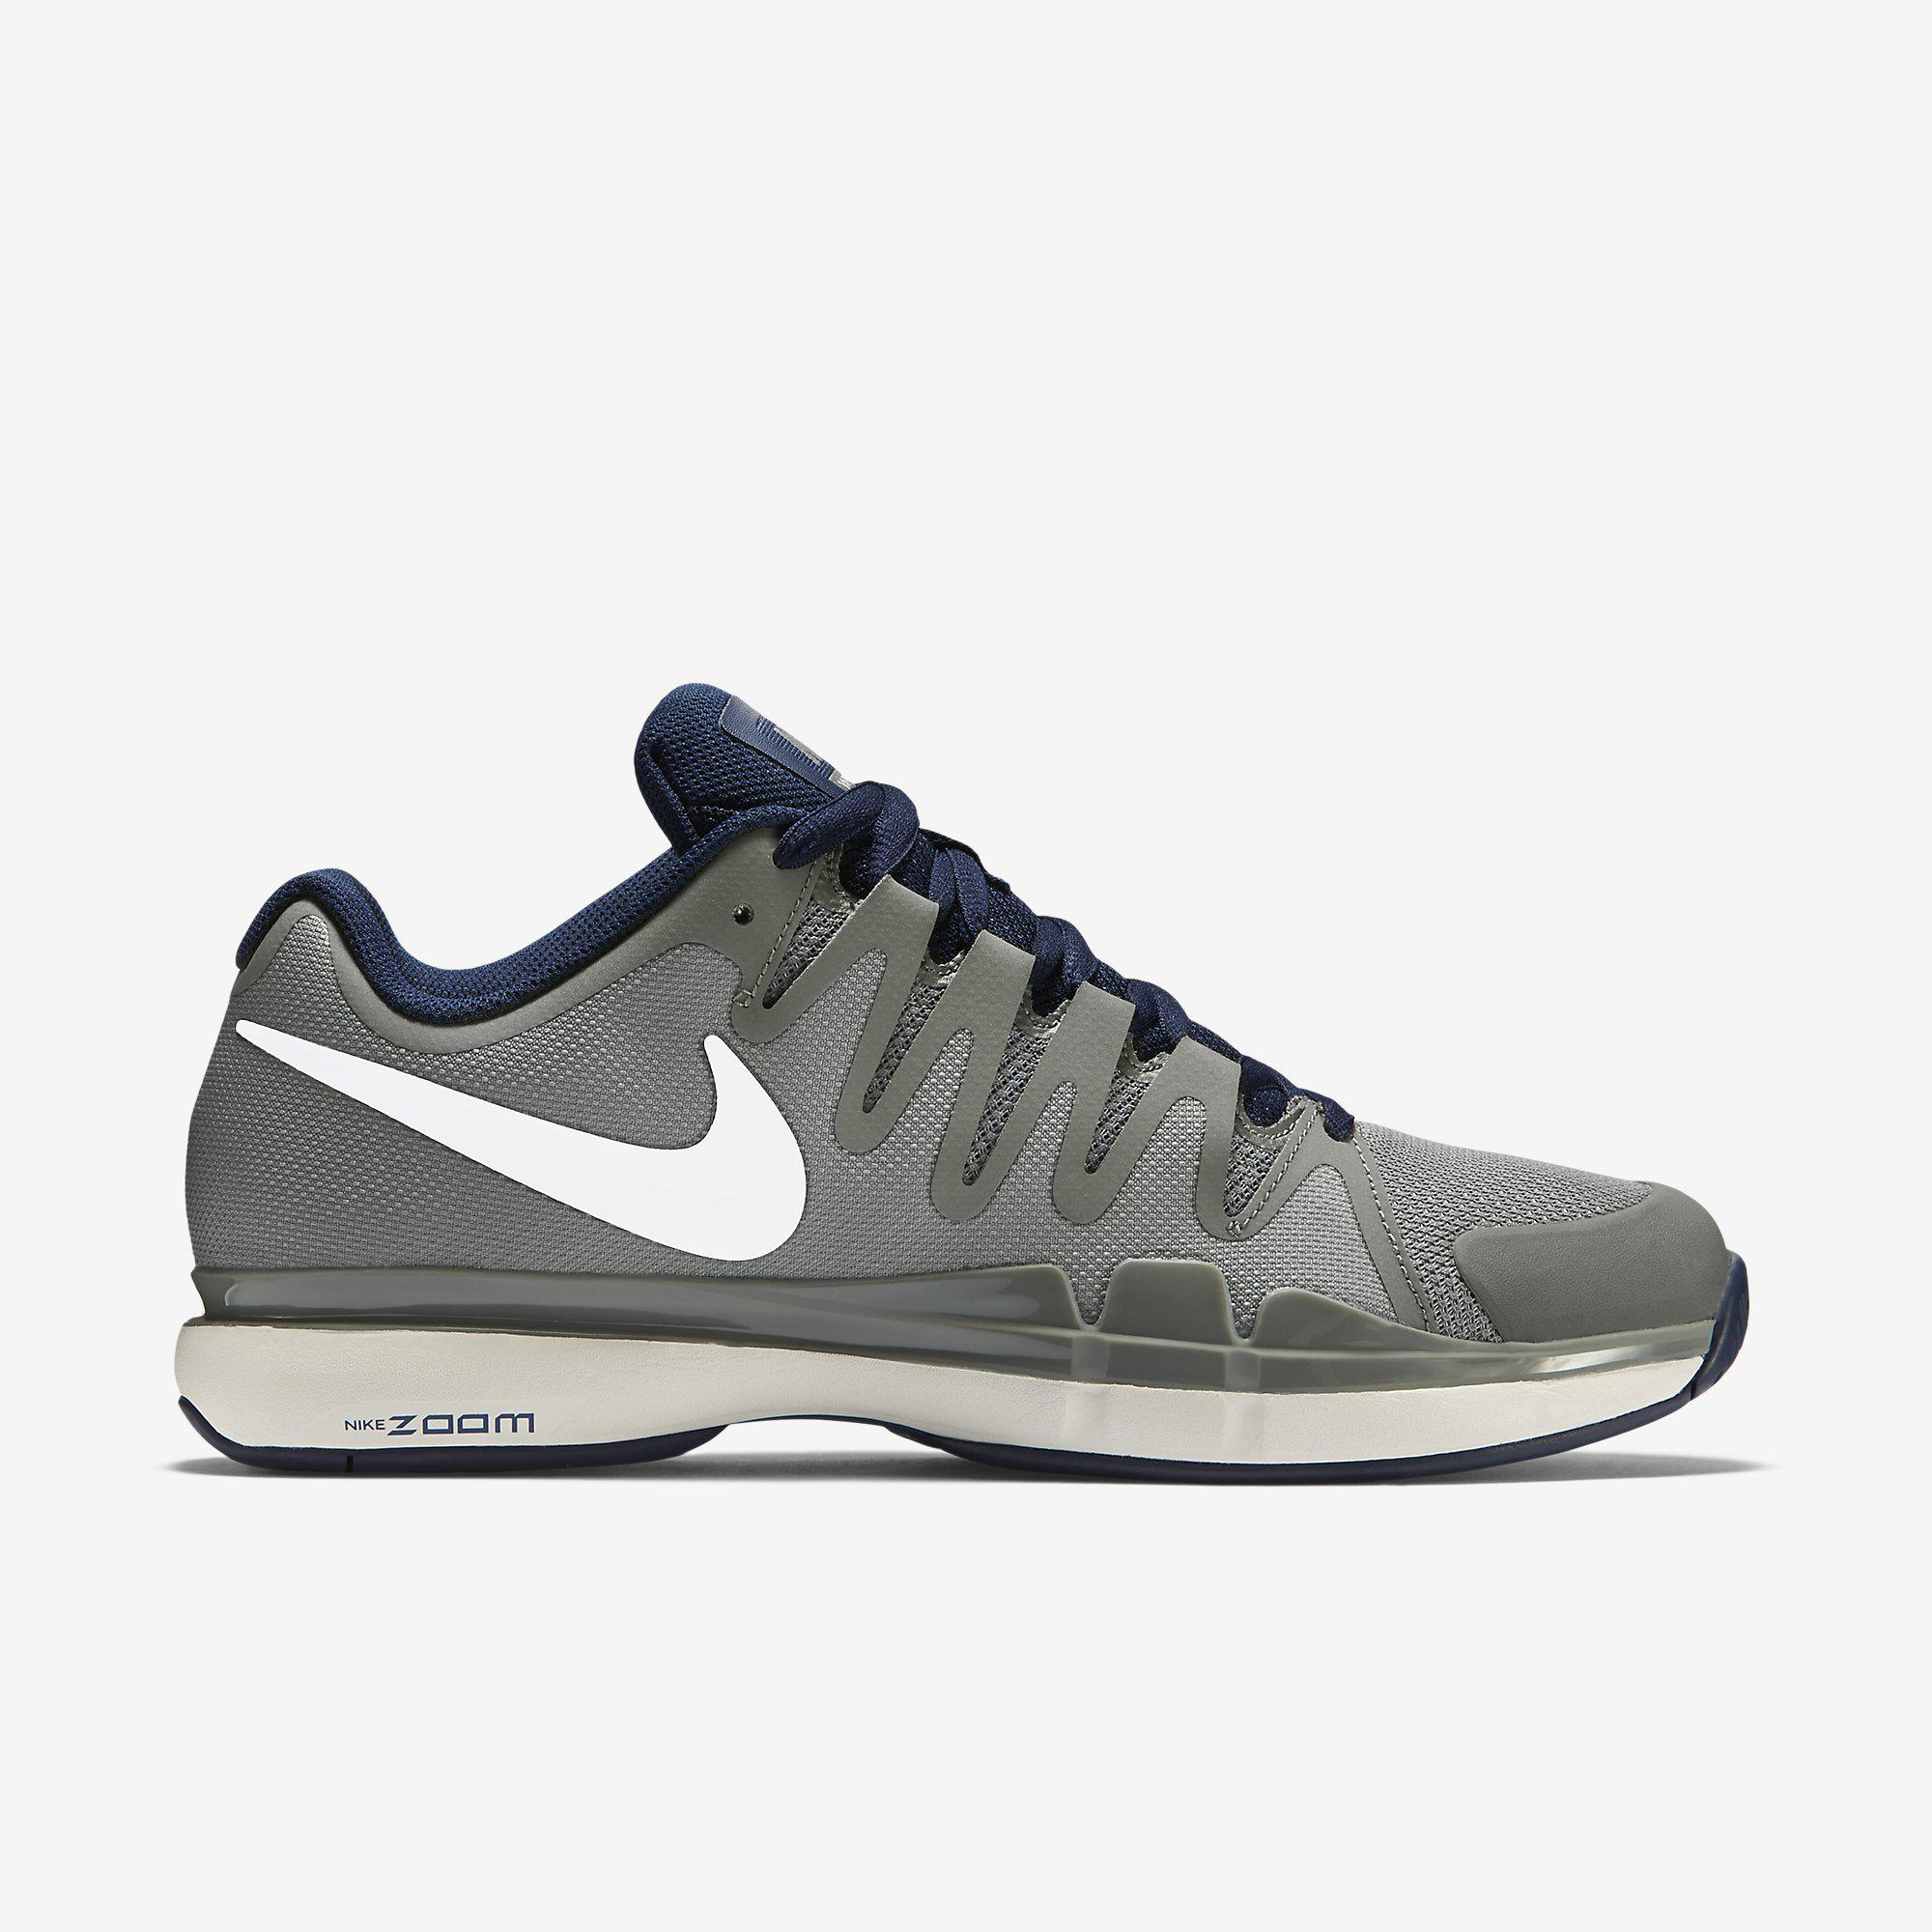 e601e9c9ee840 Nike Mens Zoom Vapor 9.5 Tour Tennis Shoes - Grey White - Tennisnuts.com